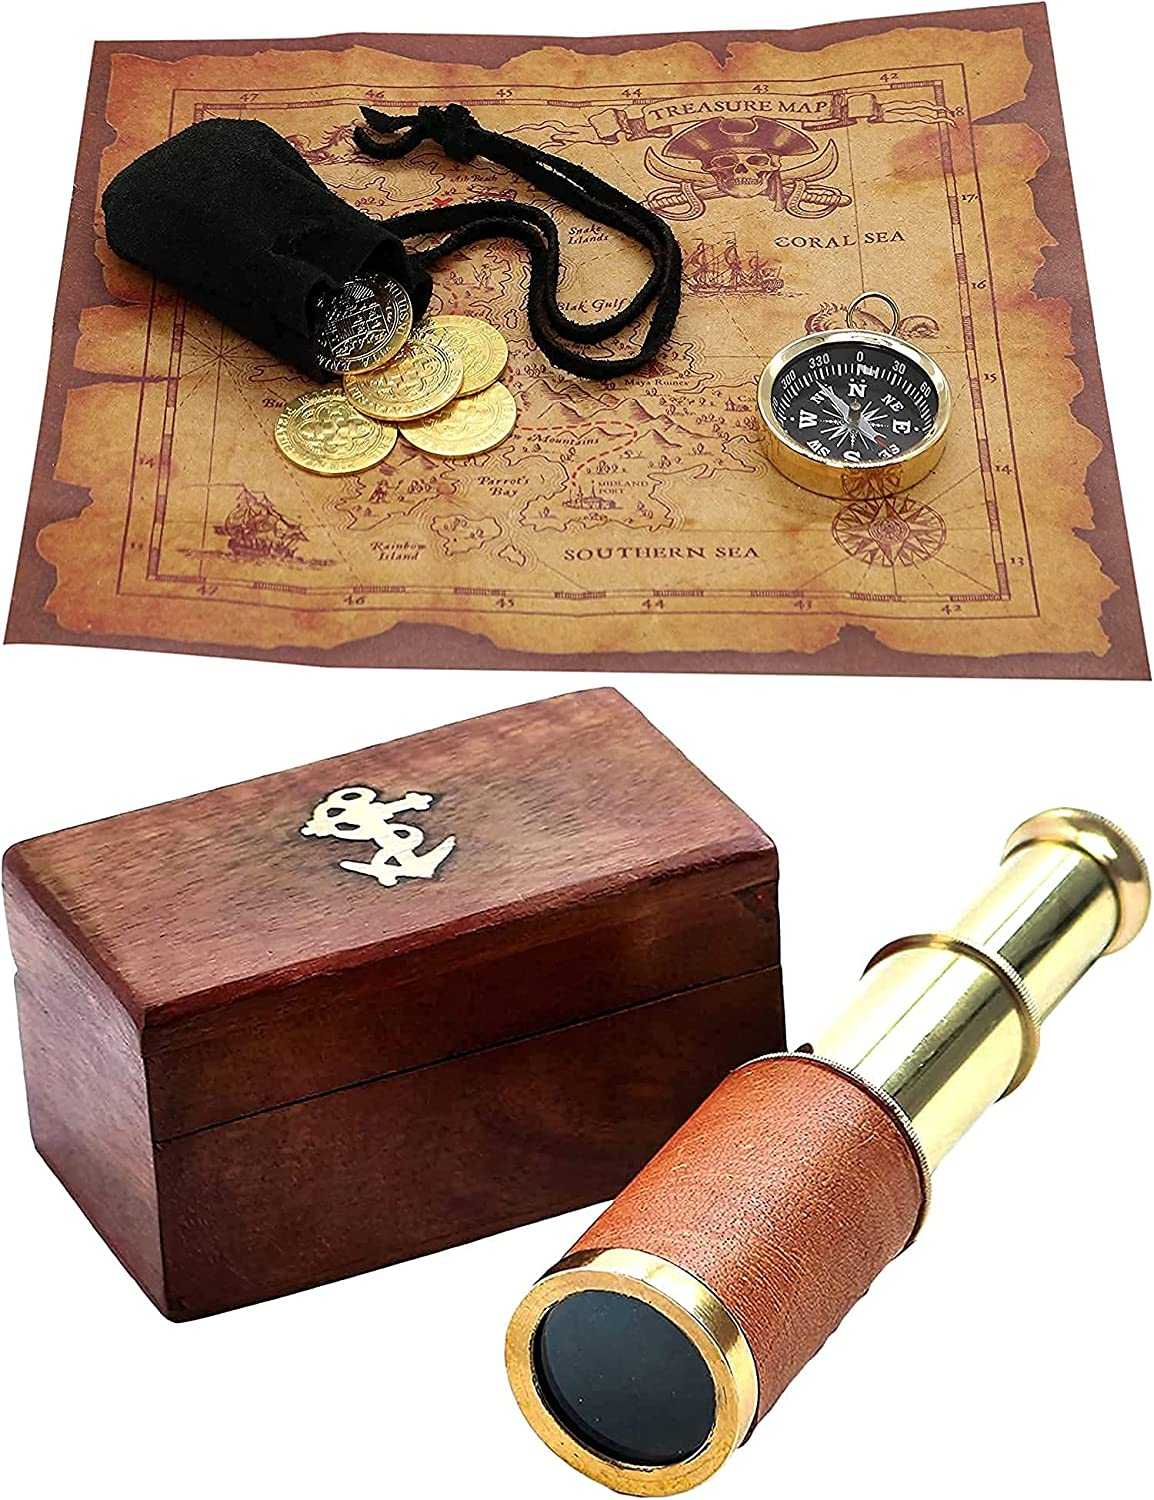 Discount mail order Mythrojan 40% OFF Cheap Sale Pirate Set Treasure Map Brass Compass and Functional